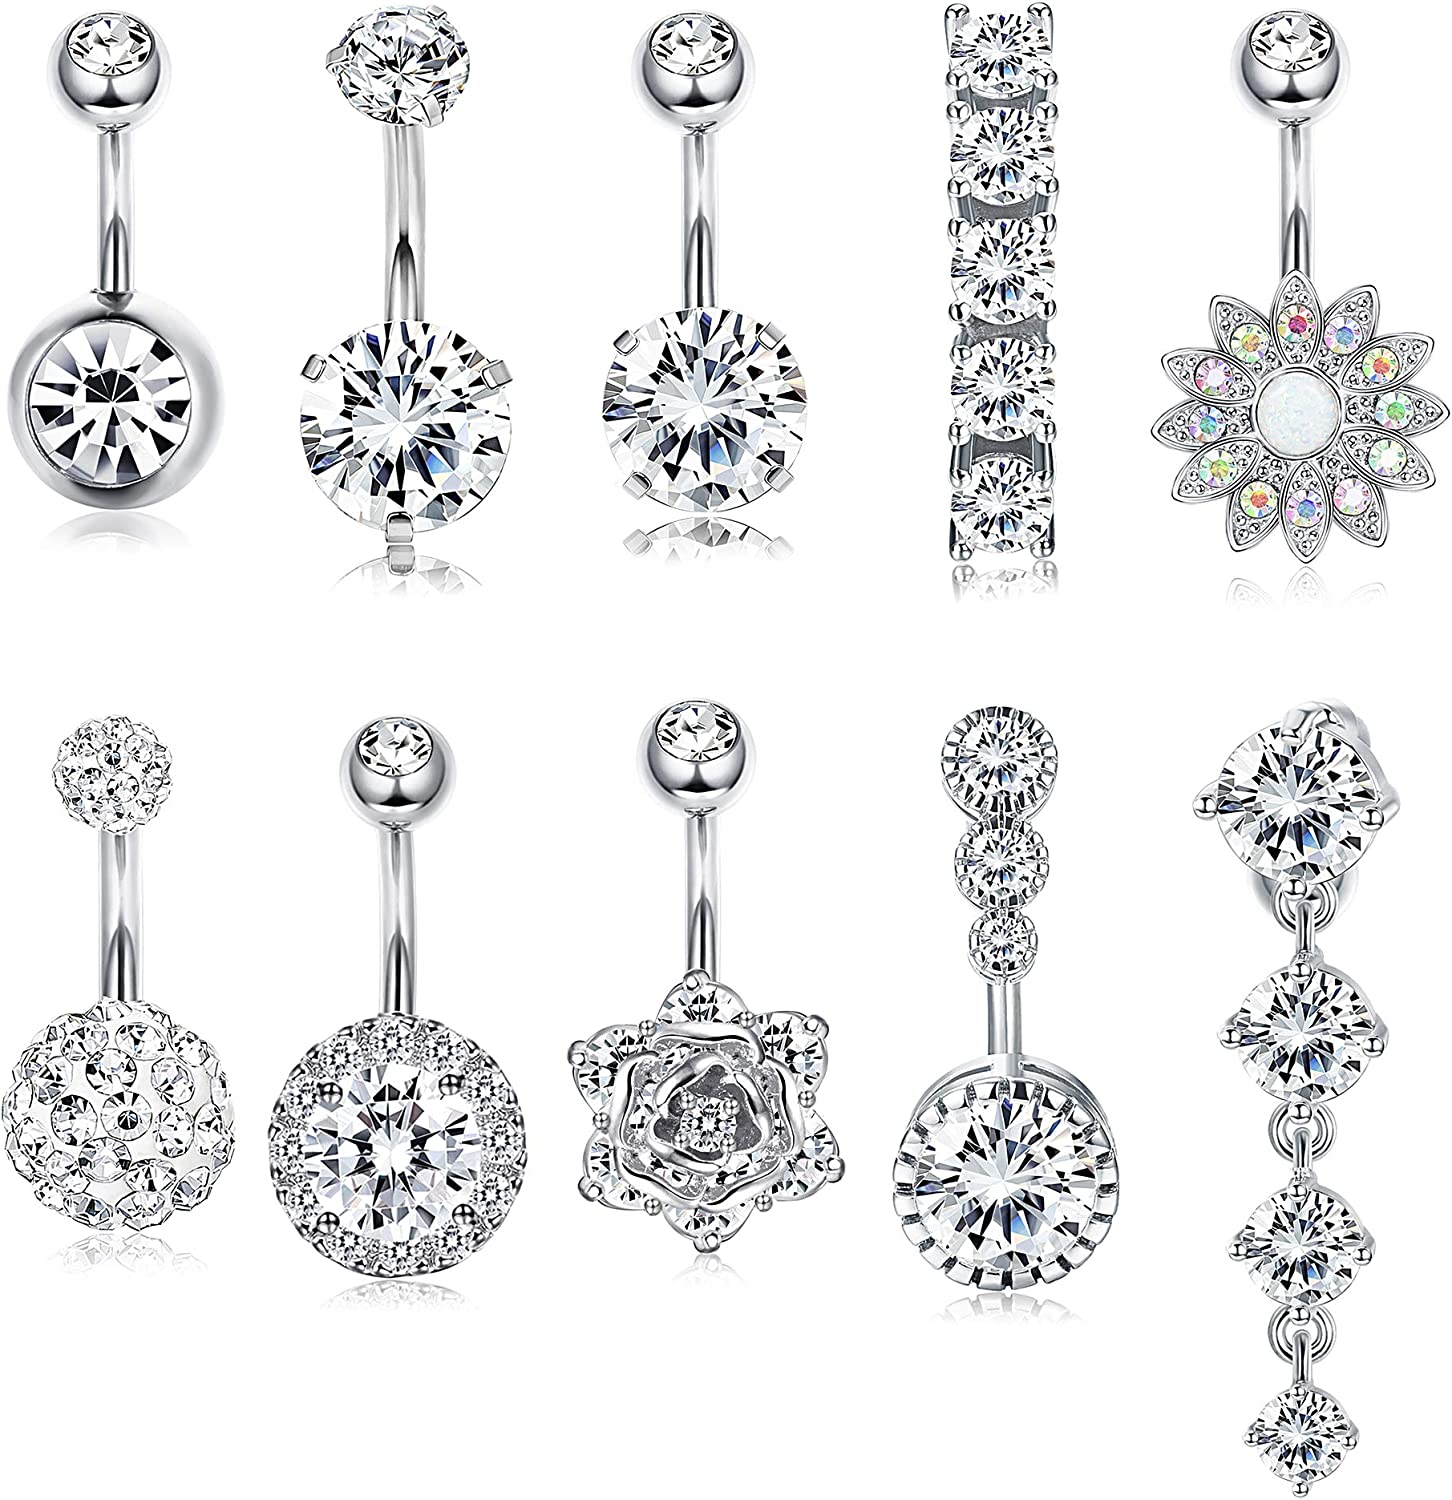 FUNRUN JEWELRY 10PCS 14G 316L Surgical Steel Belly Button Ring Navel Piercing Barbell CZ Inlay Body Piercing Jewelry